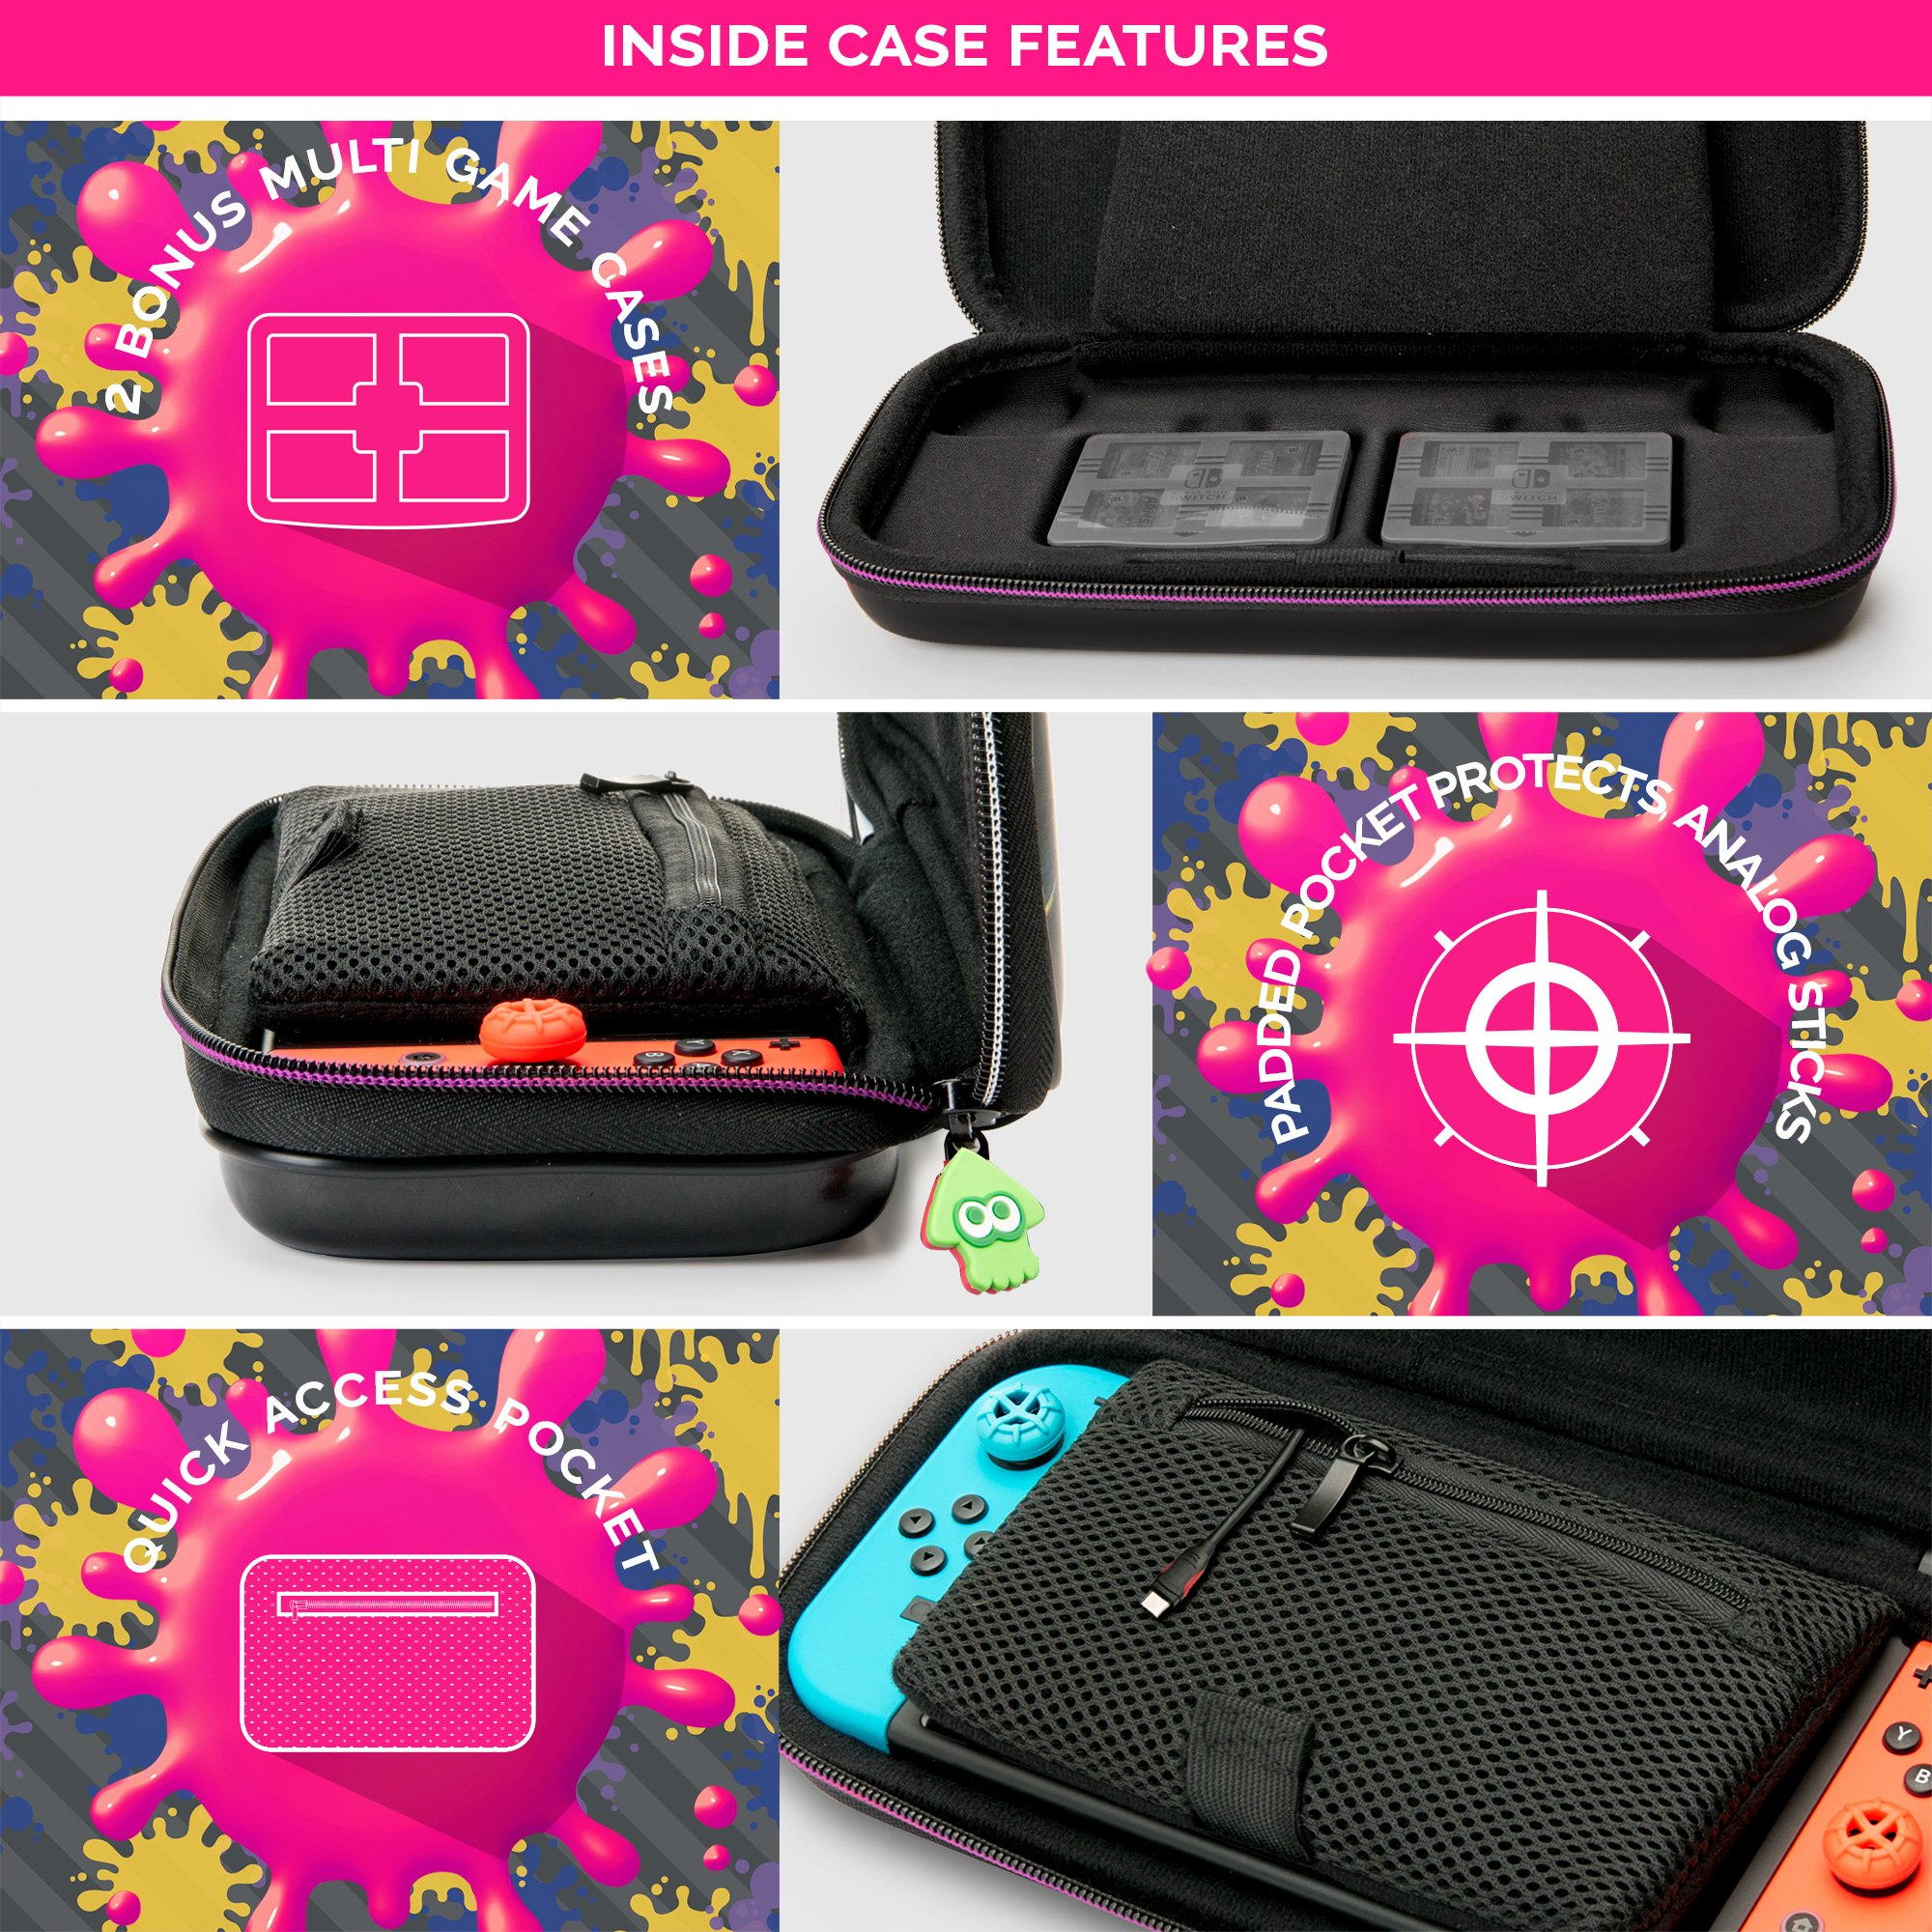 NINTENDO SWITCH DELUXE SPLATOON 2 TRAVEL CASE, PREMIUM HARD CASE MADE WITH PU LEATHER, ORIGINAL SPLATOON ART. SECURE FIT FOR SWITCH, DESIGNED TO PROTECT SWITCH\'S ANALOG STICKS, PLUS 2 MULTI-GAME CASES